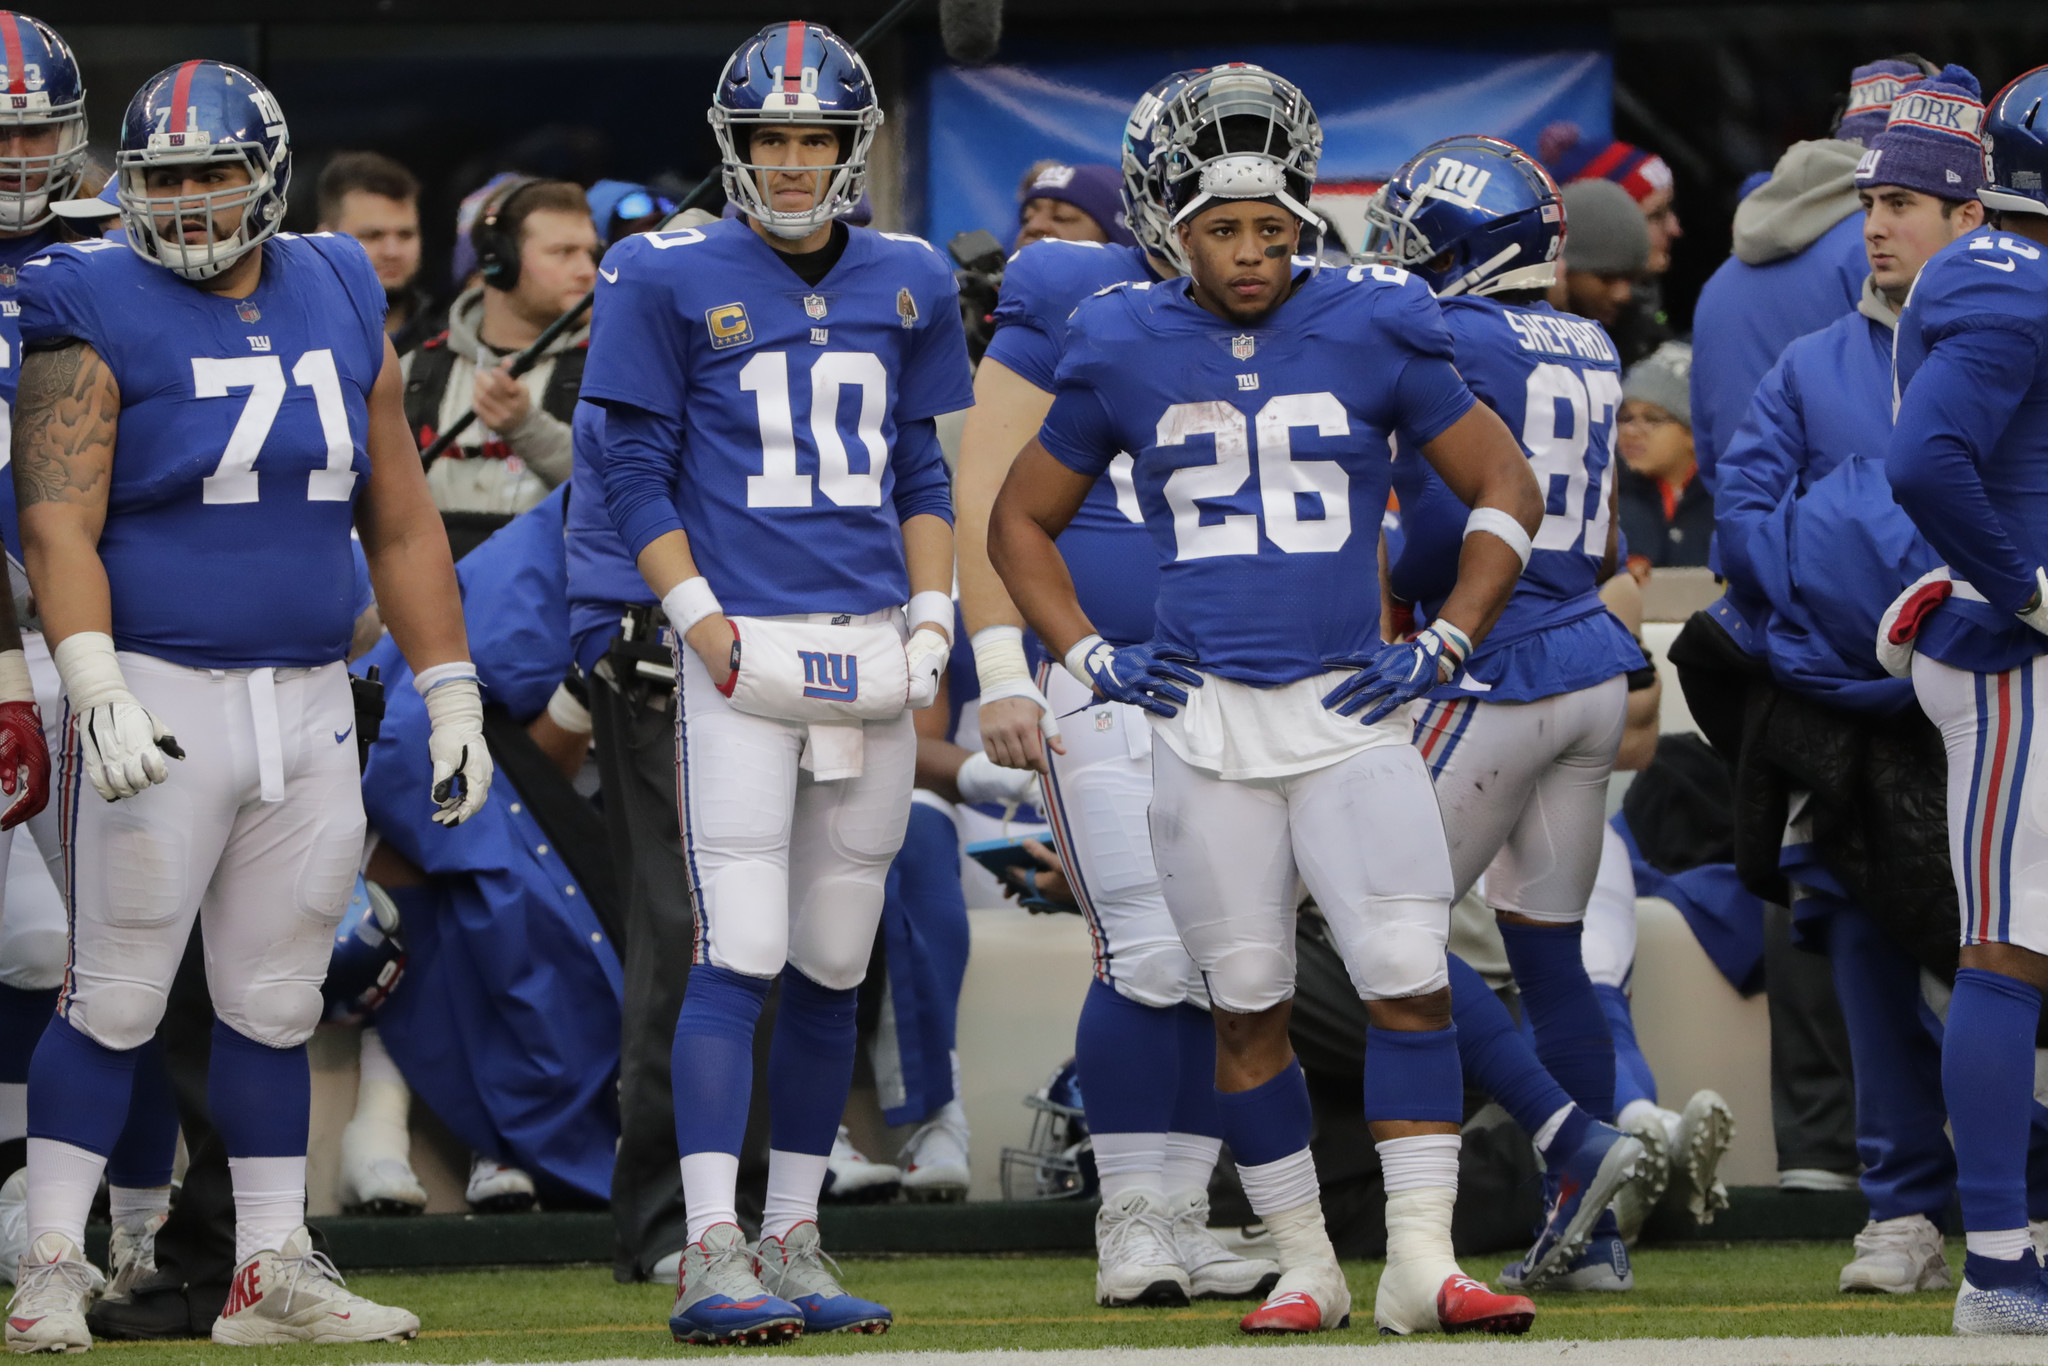 Giants Mailbag: What are Big Blue's potential issues in the 2019 season?